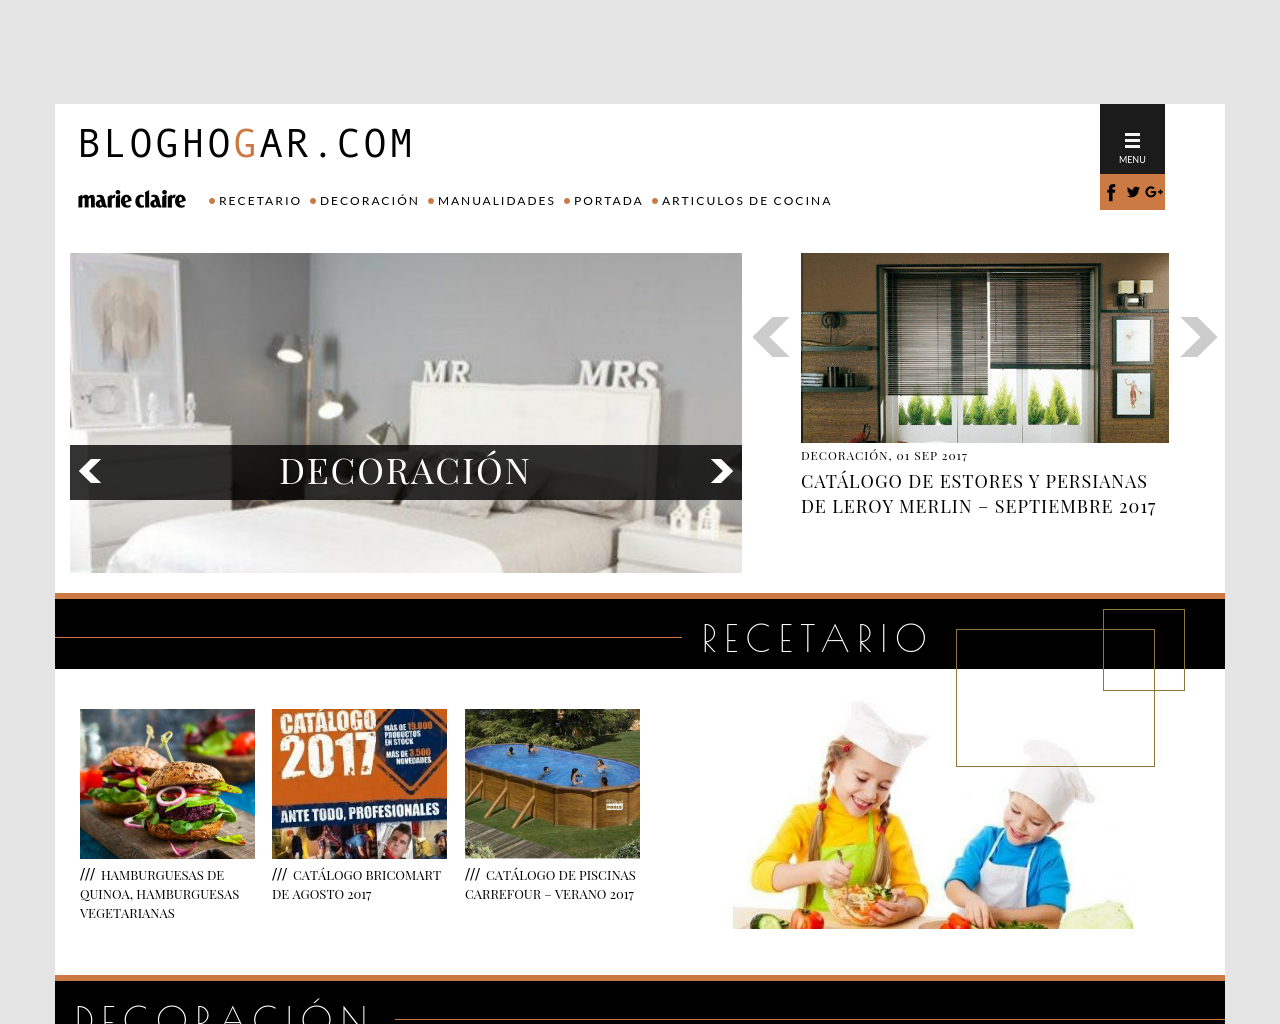 Blog-Hogar-Advertising-Reviews-Pricing